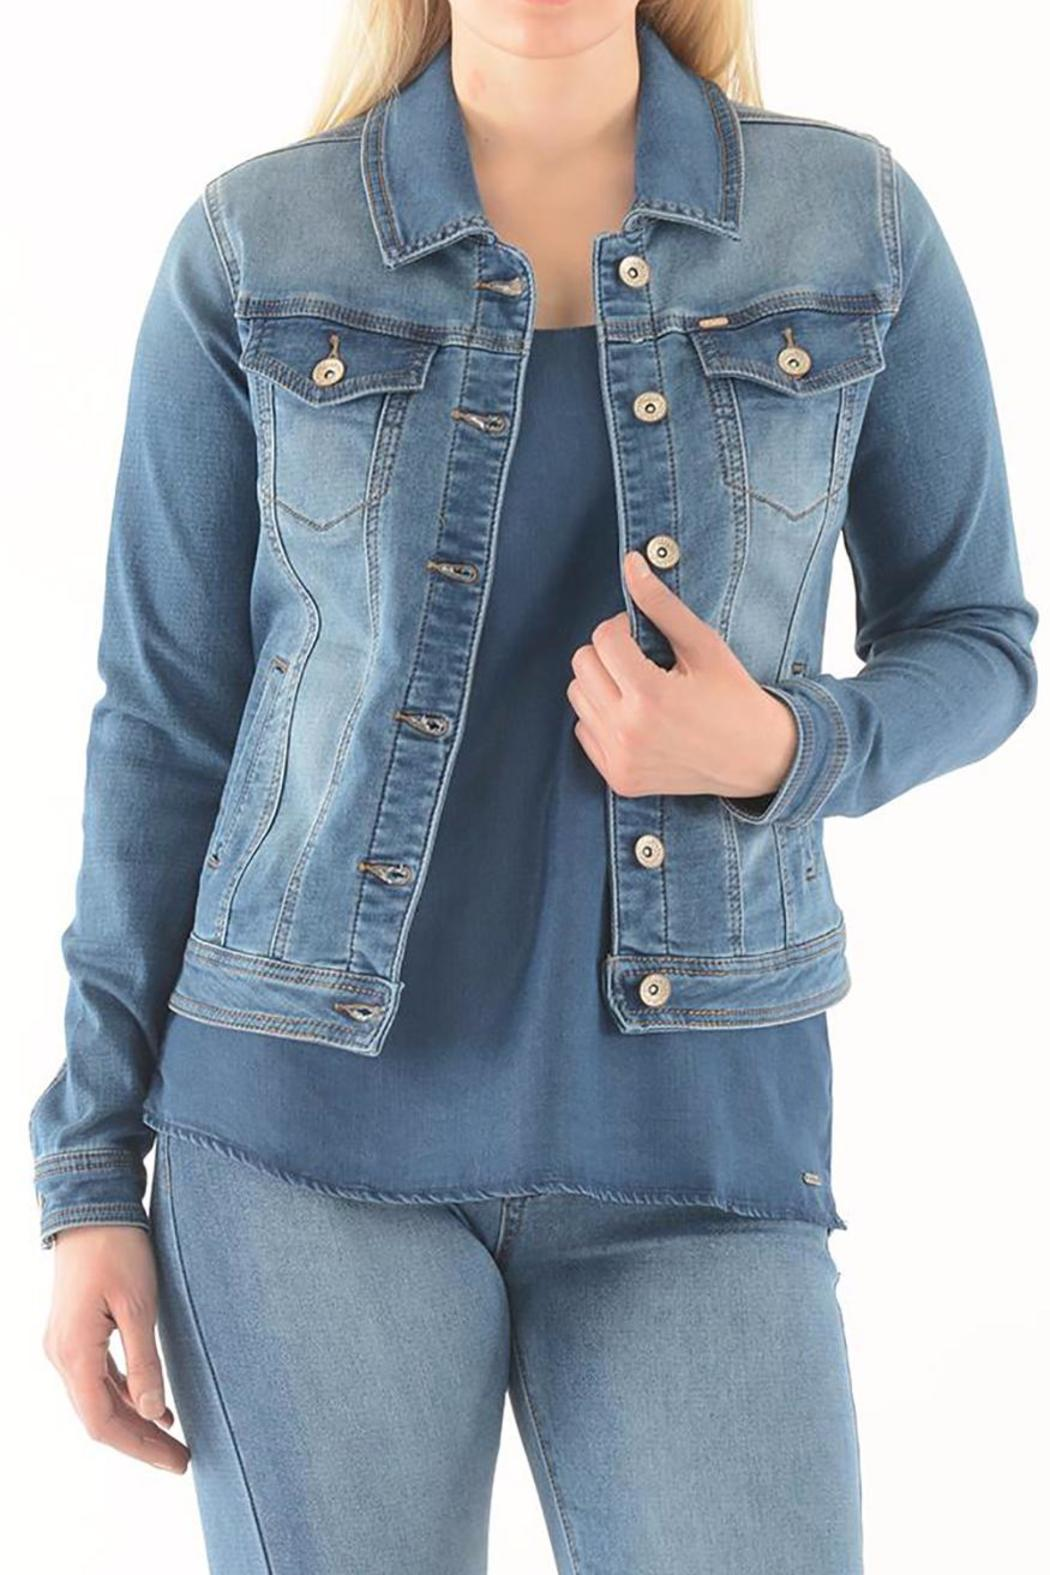 Lois Jeans Stretch Jean Jacket from British Columbia by Silhouette ...